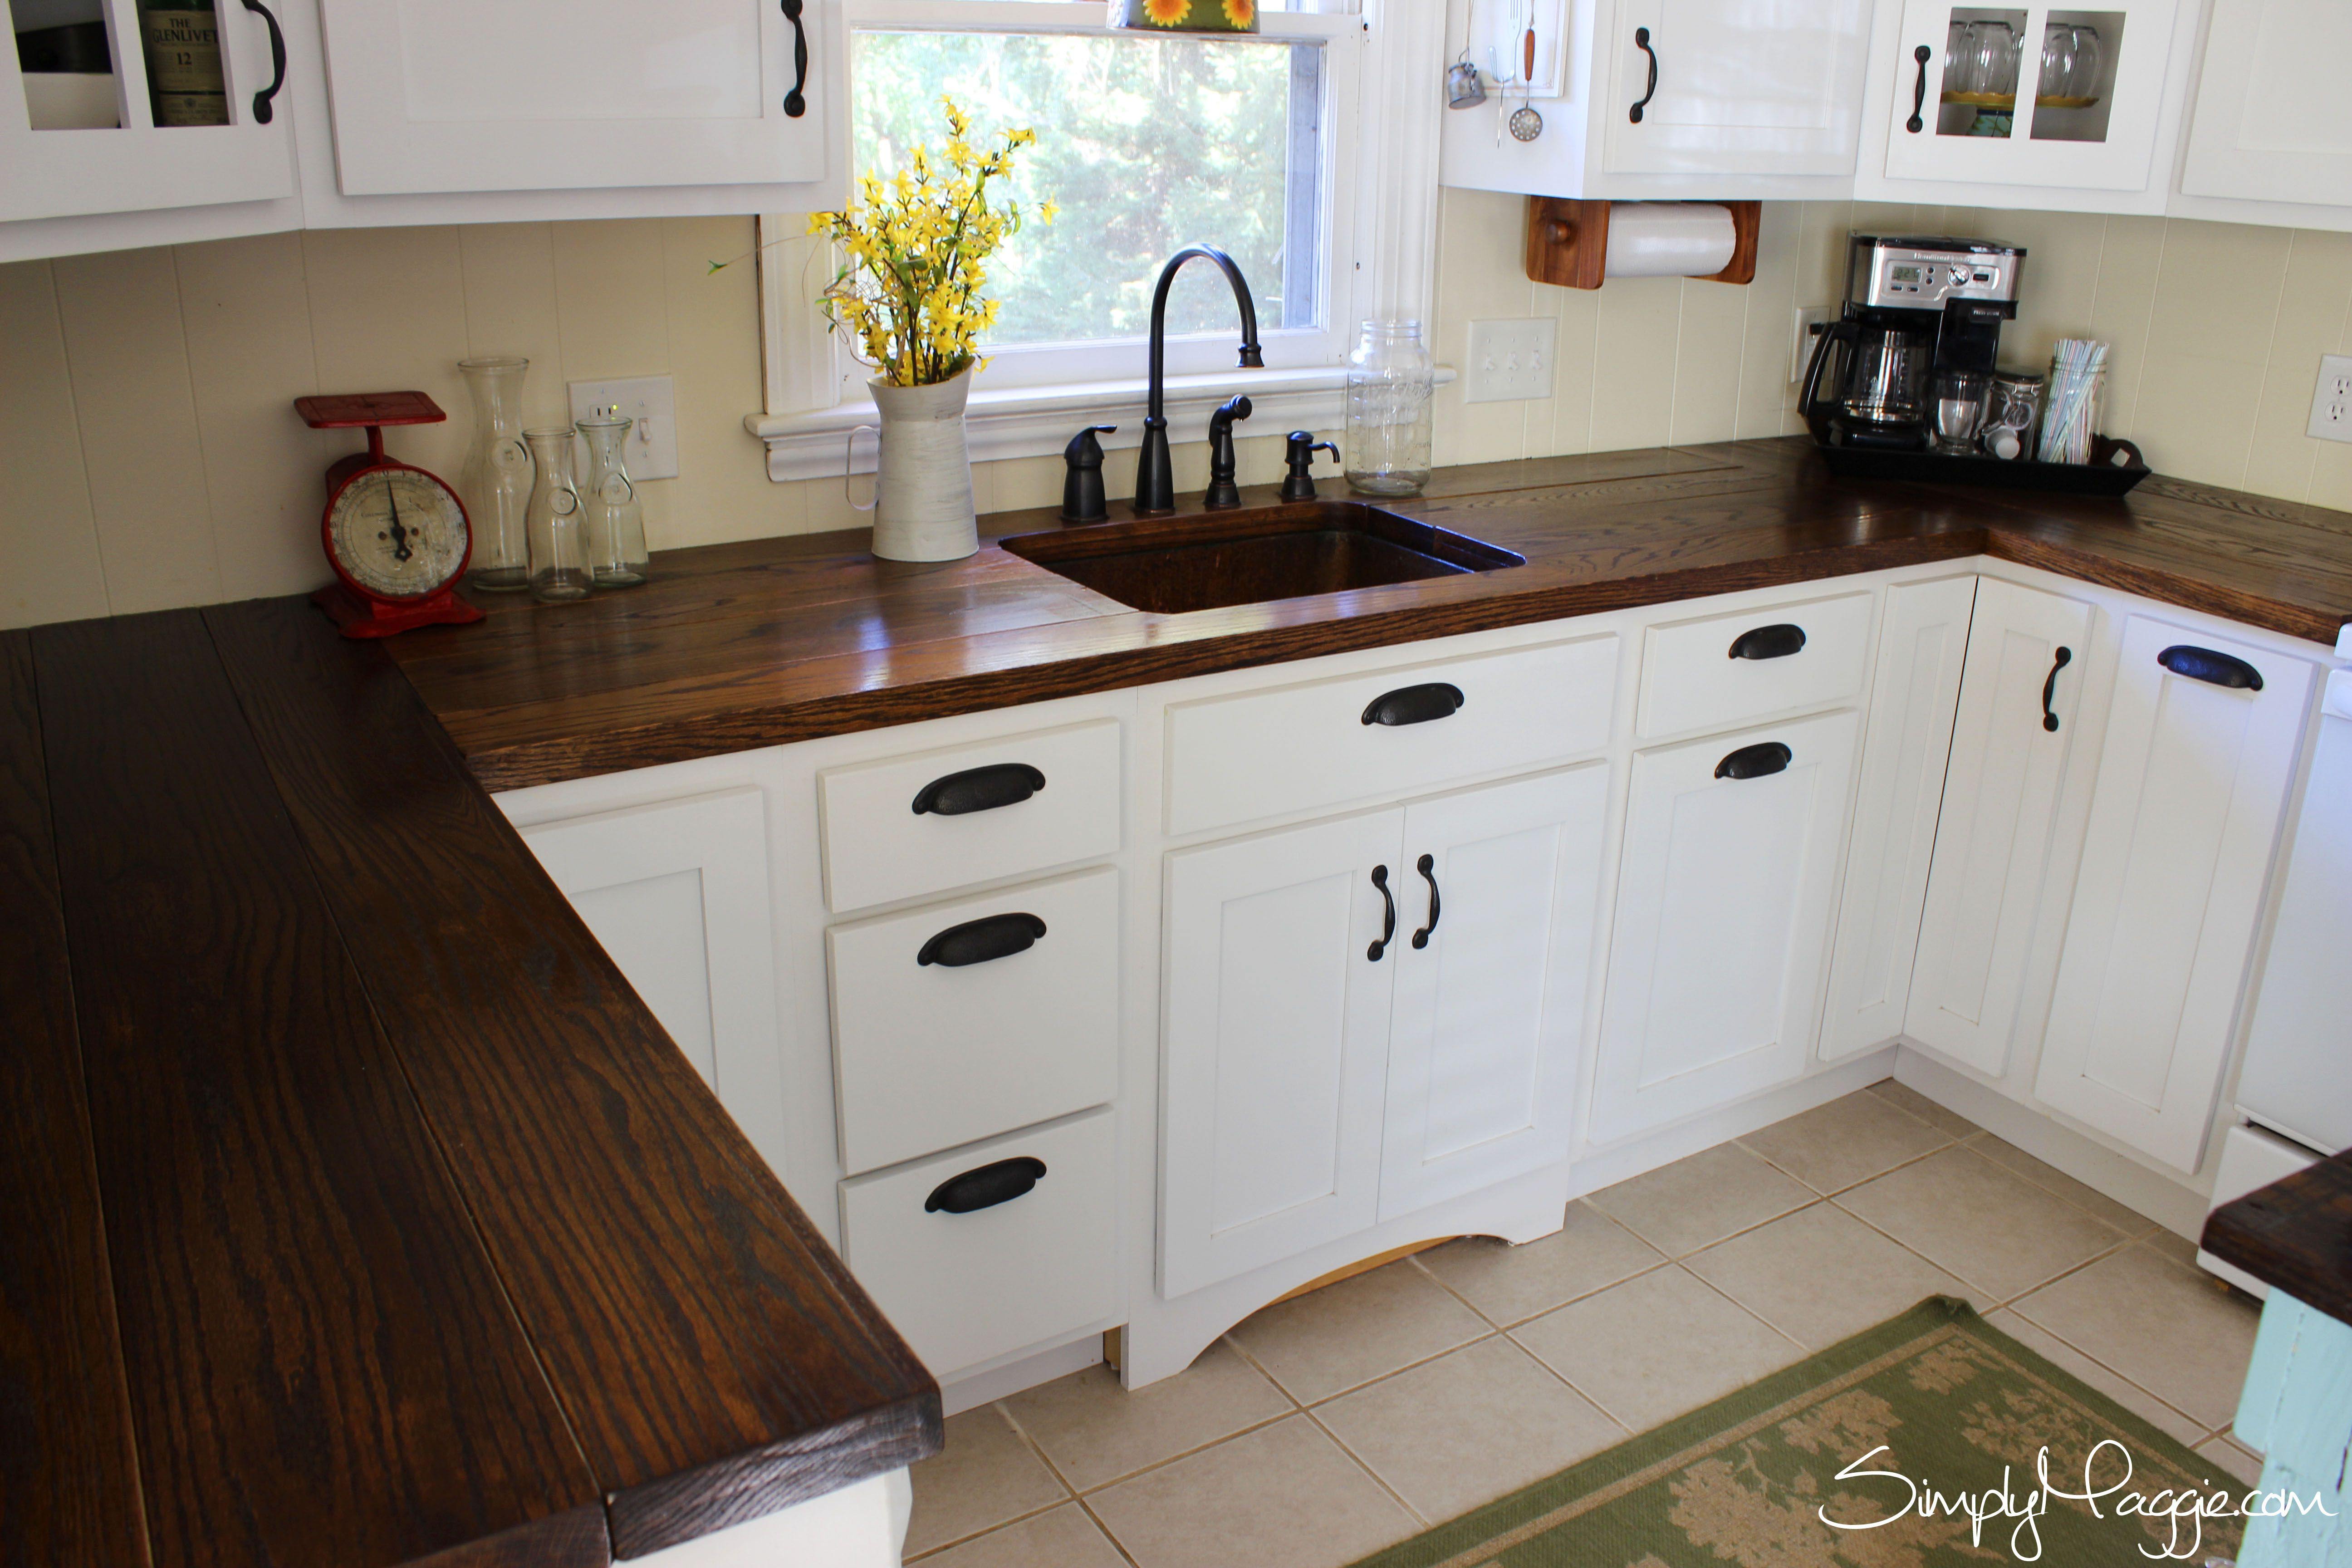 12 Diy Countertops That Will Blow Your Mind Kitchen Remodel Diy Countertops Diy Kitchen